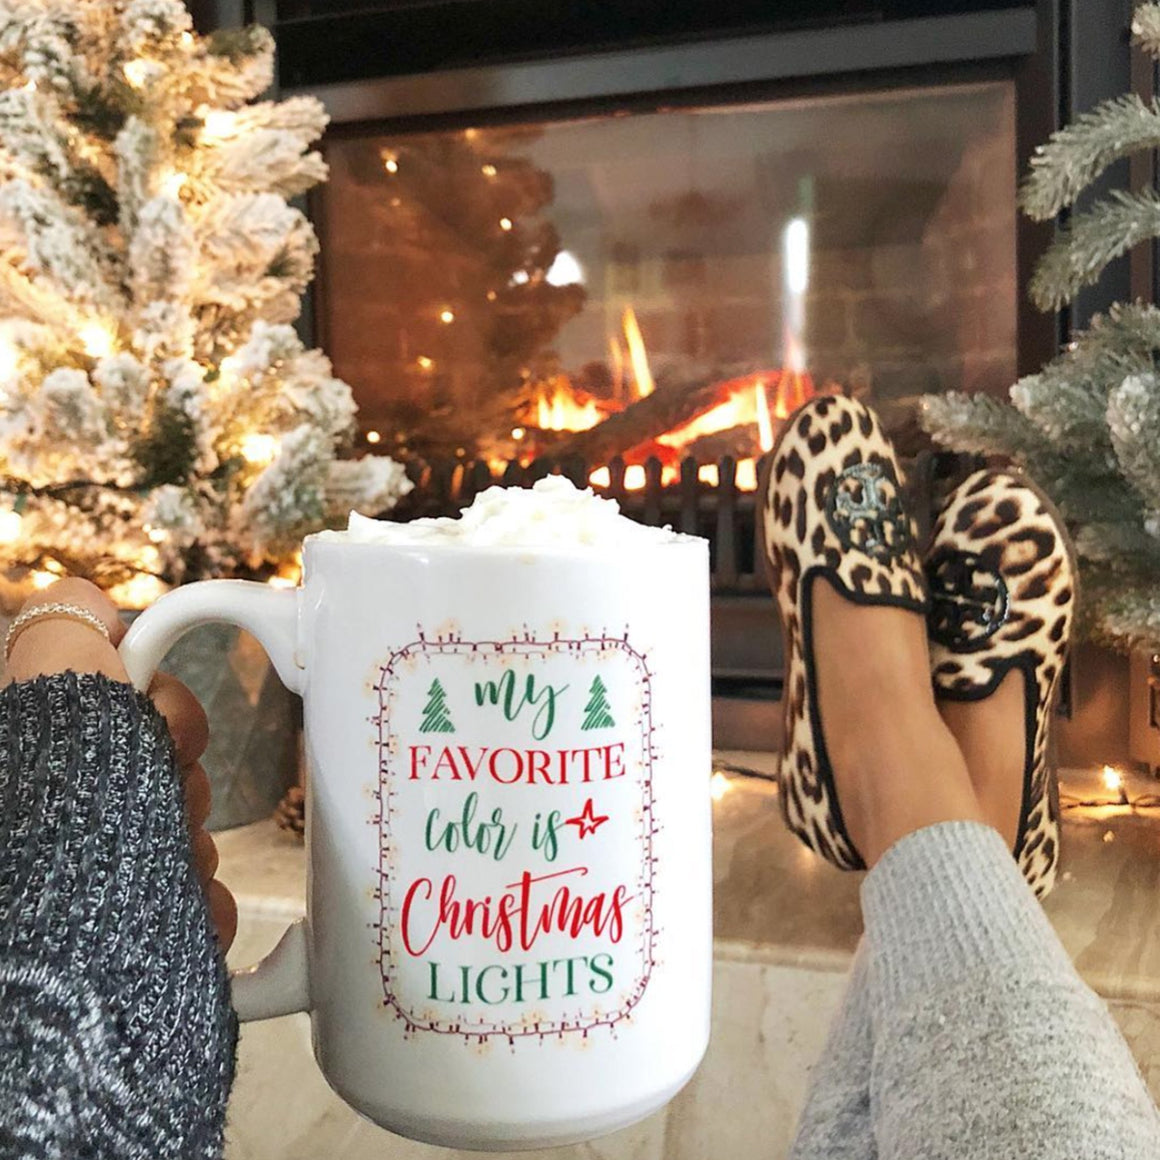 My Favorite Color is Christmas Lights Mug - Pretty Collected